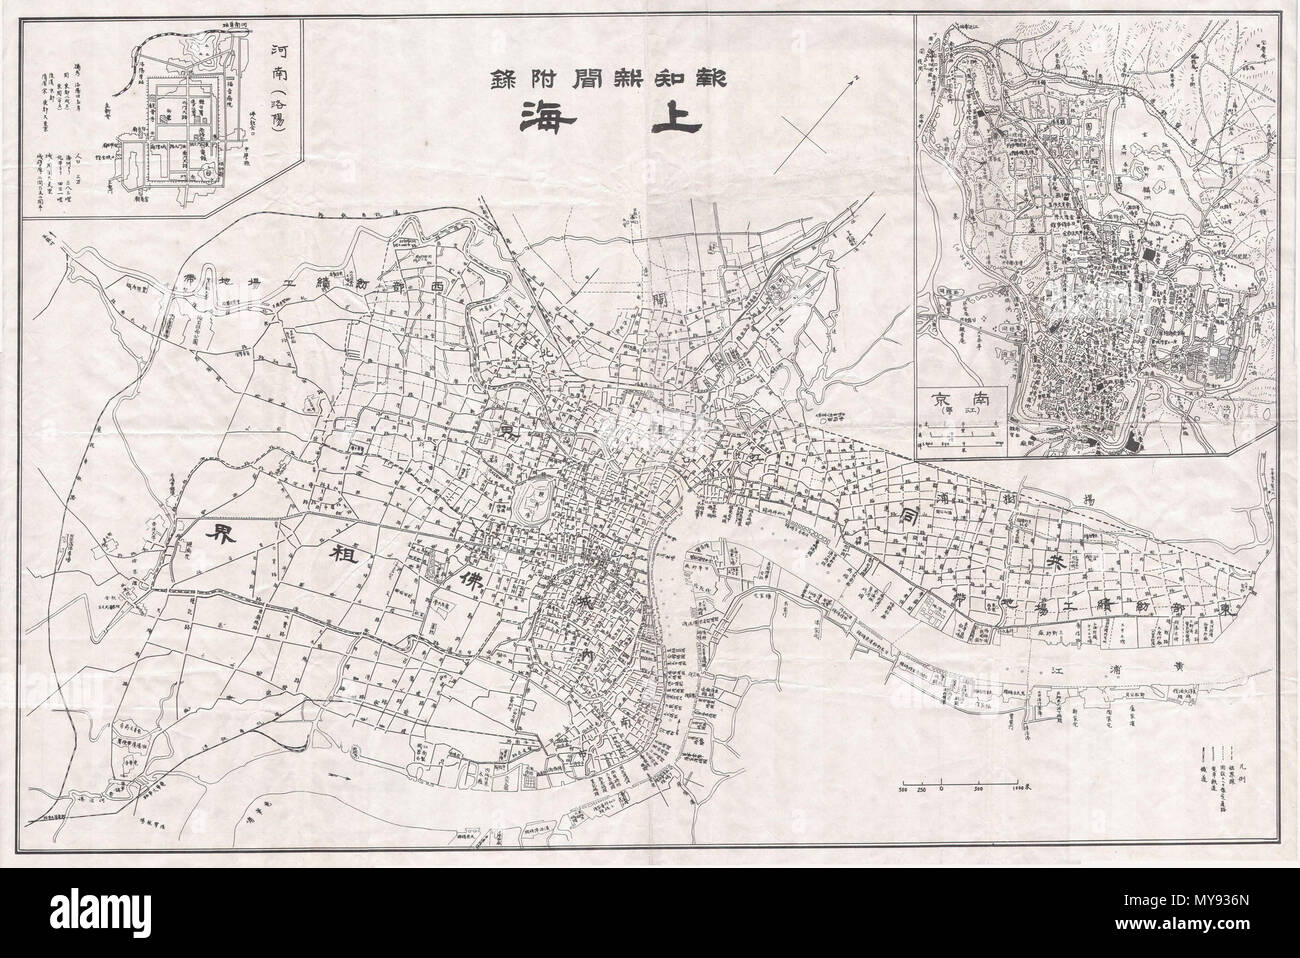 Map of Shanghai. English: This 1932 map depicts the city of ... Shanghai Map English on shanghai on the map, shanghai city map, shanghai tourist map, shanghai province, shanghai road map, shanghai bus map, shanghai skyline, shanghai map pdf, shanghai on a map, shanghai mrt, shanghai metro, shanghai bus routes in english, shanghai map chinese, shanghai xuhui district, shanghai tourism, shanghai centre map, shanghai map asia, shanghai street map downtown, shenzhen subway english,